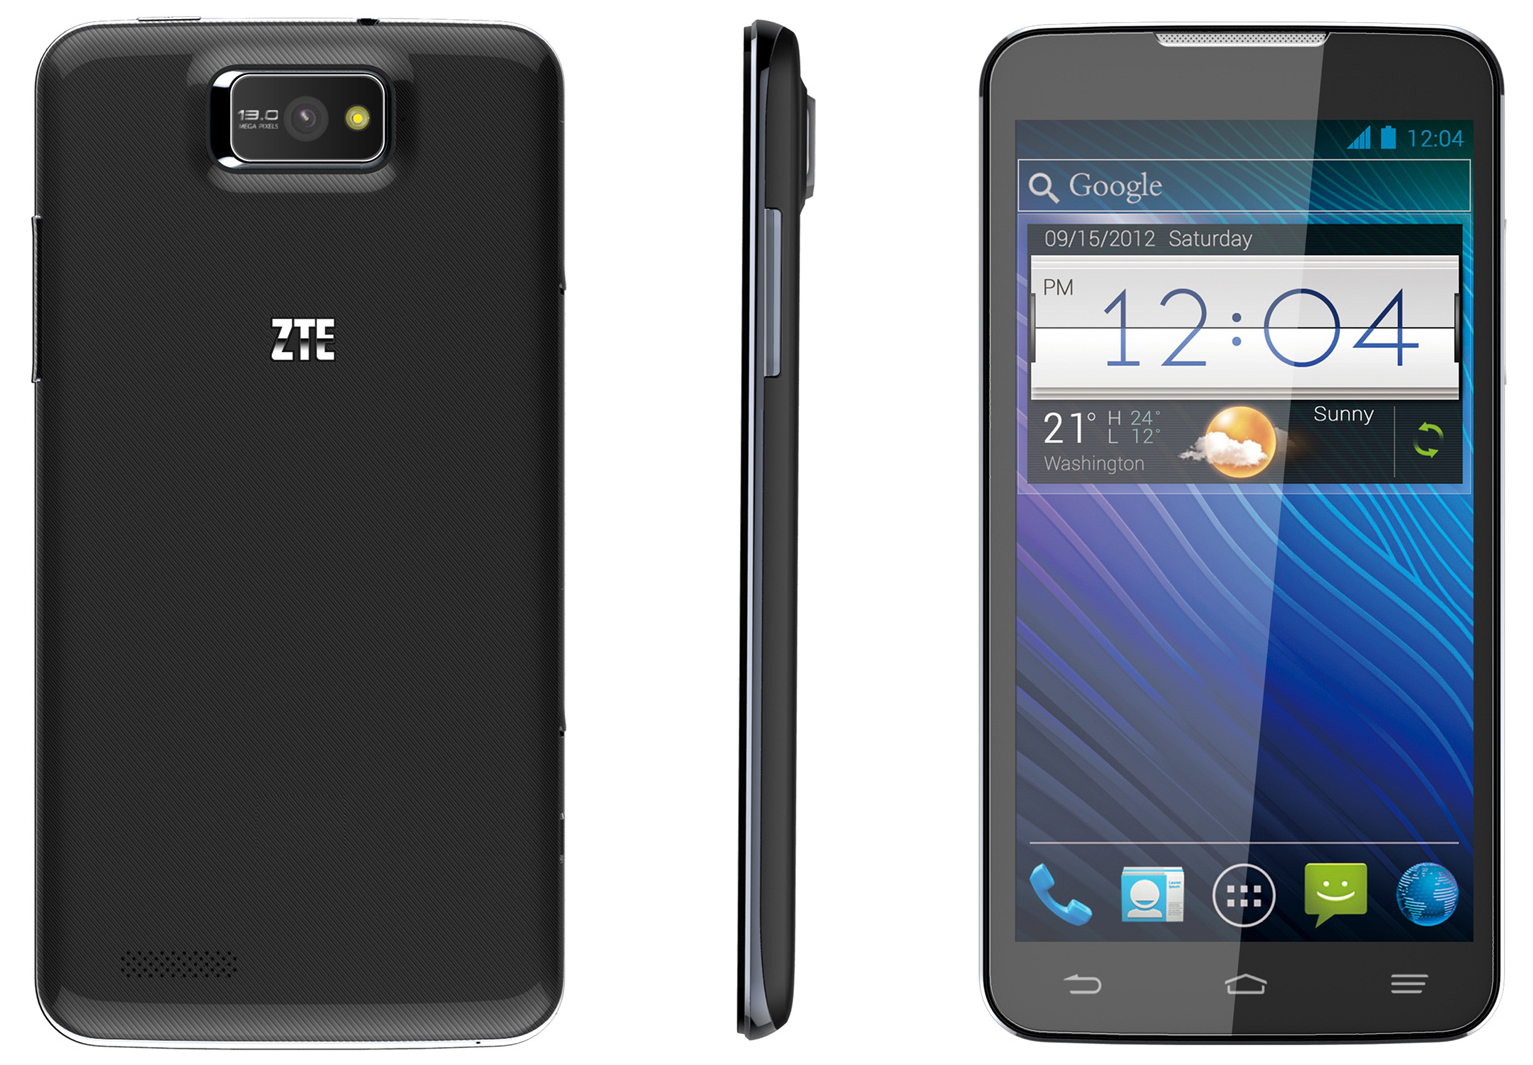 zte v6 plus specs images are derived